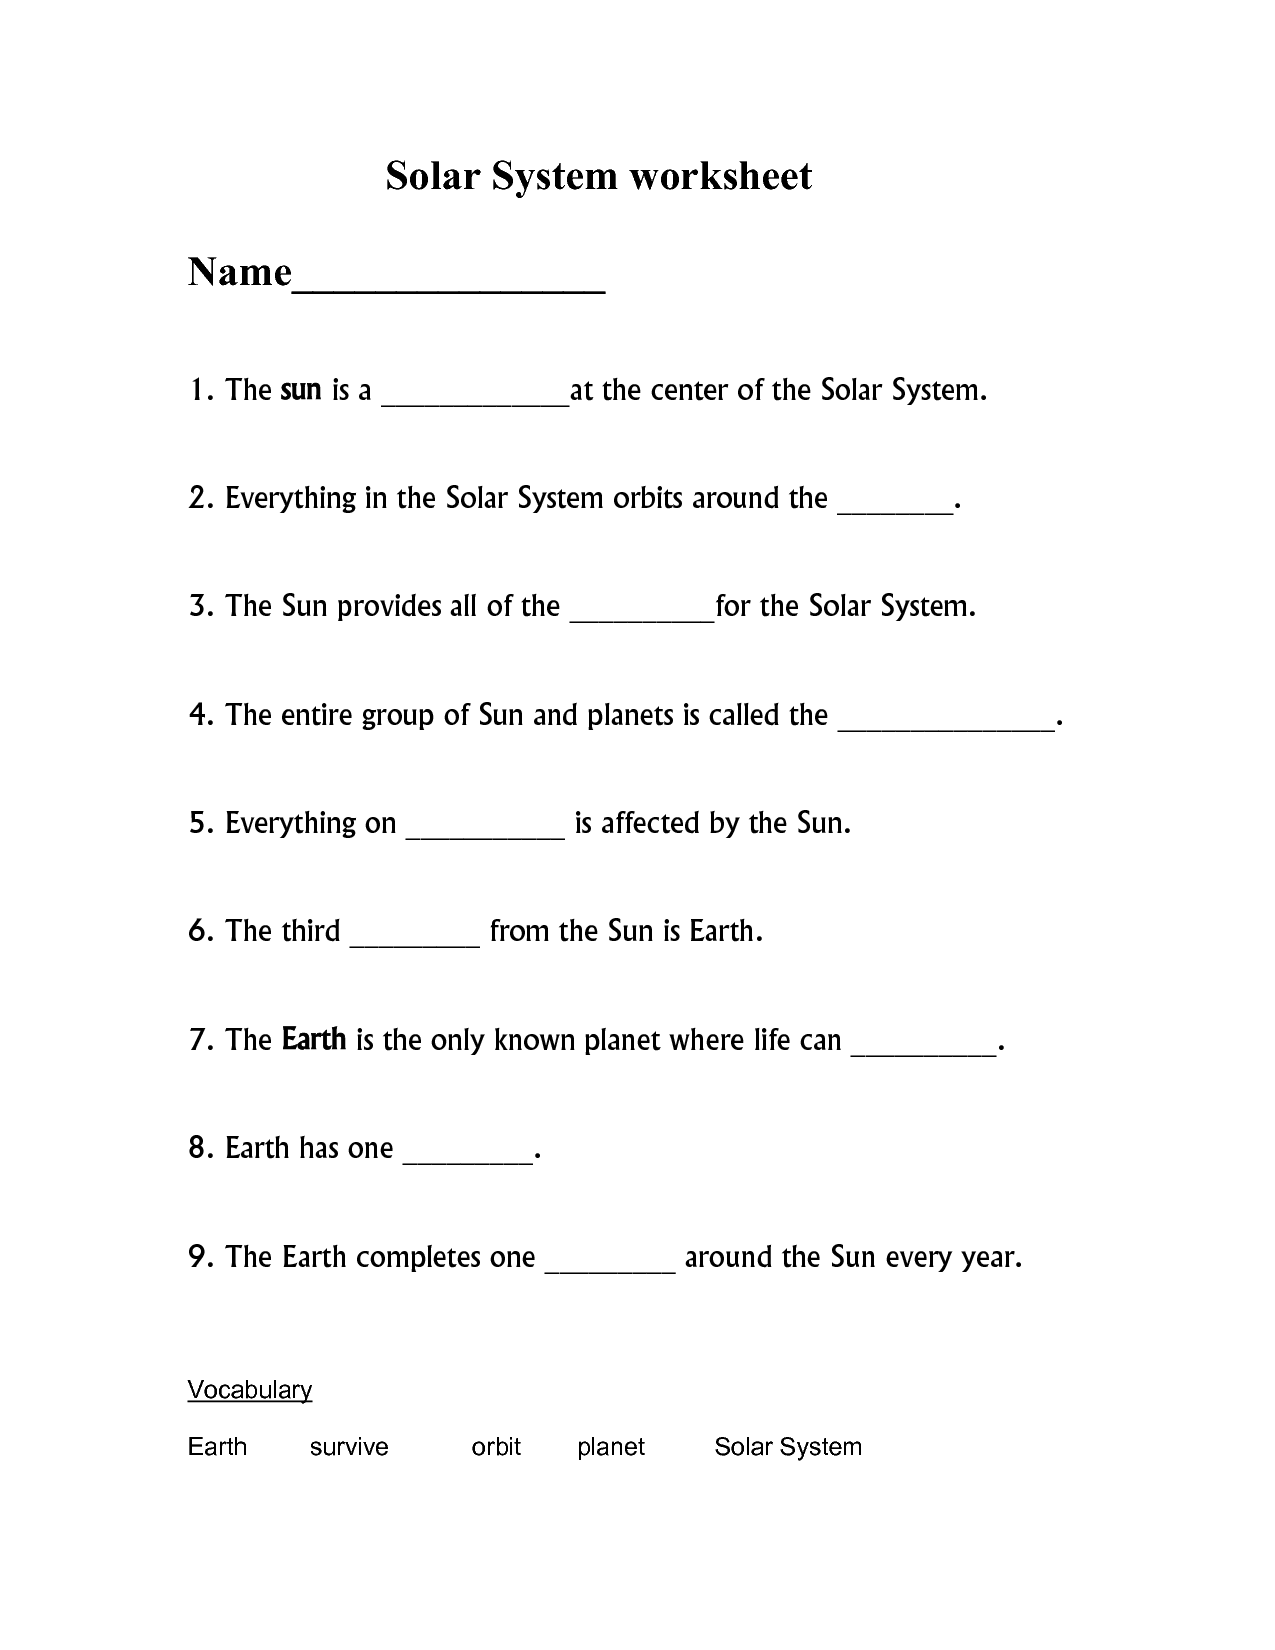 About Solar System Worksheet